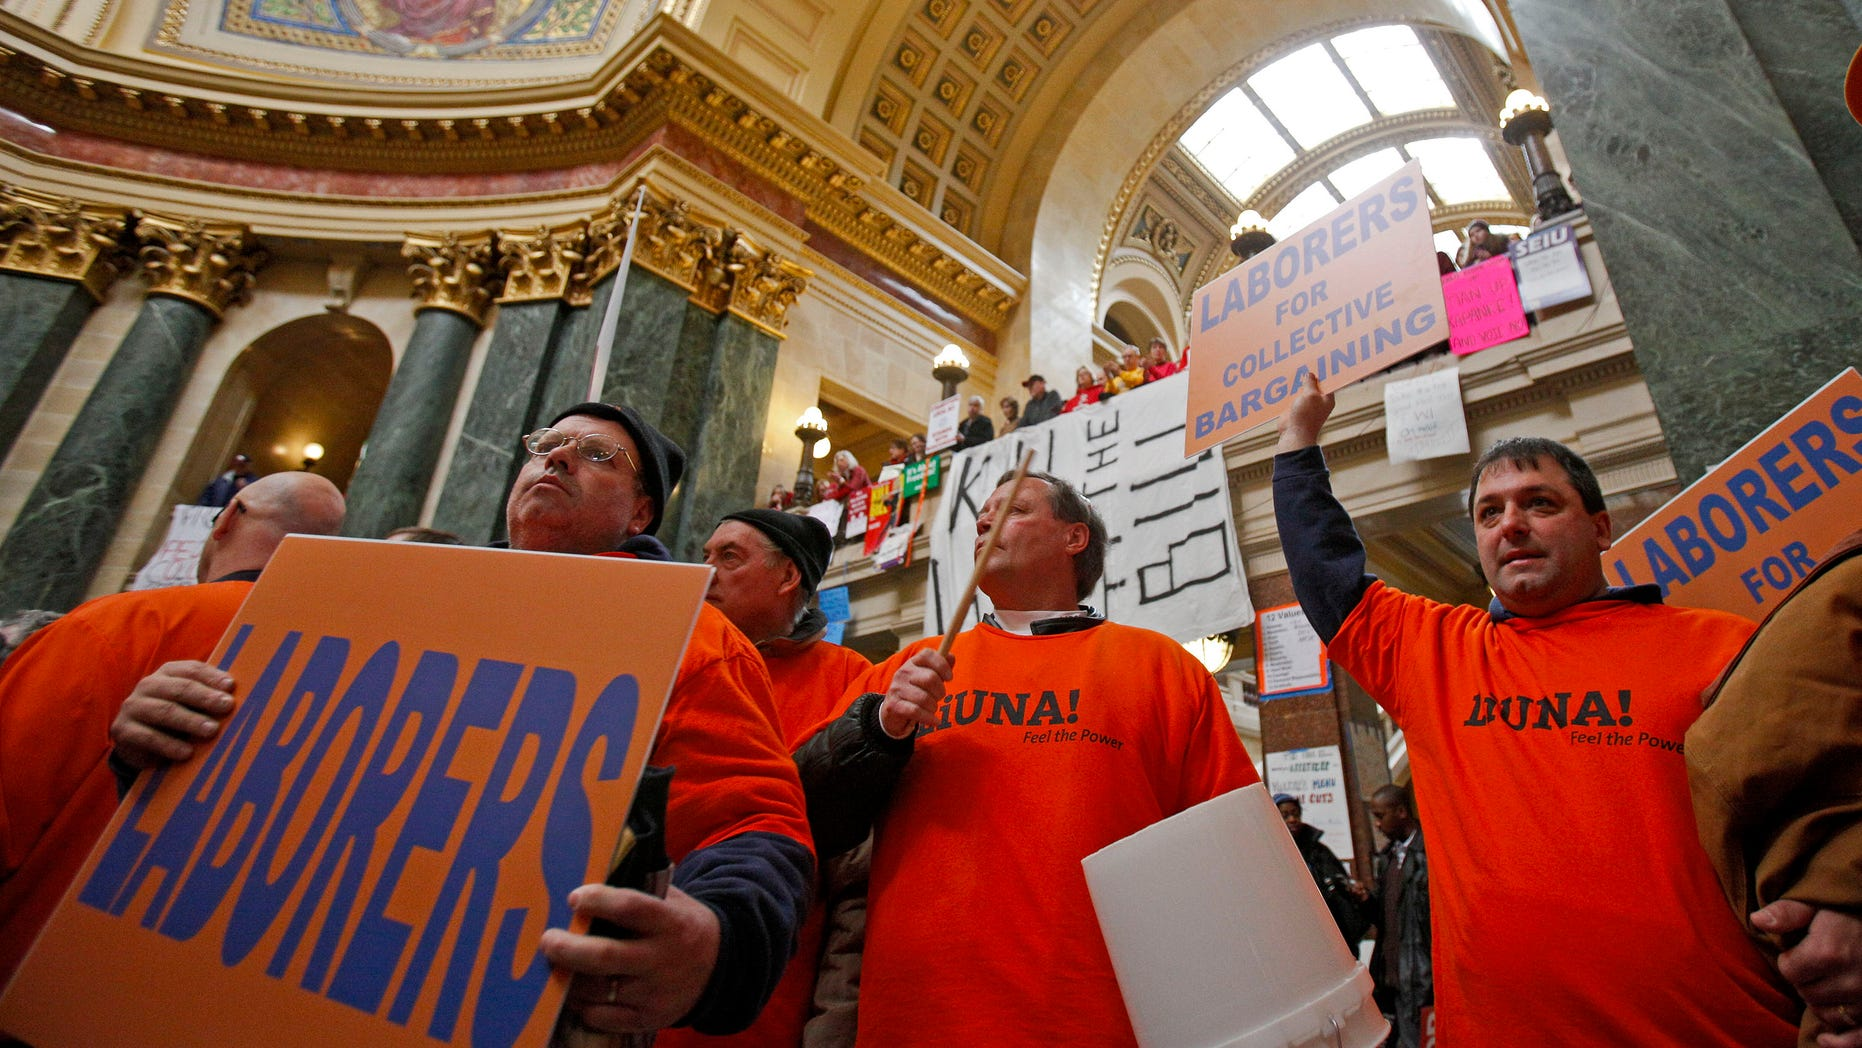 Union worker Dan Burke, center, of Janesville, Wis., uses a bucket to drum after loosing his voice during protests at the state Capitol in Madison, Wis., Friday, Feb. 25, 2011, over the governor's proposed budget. (AP)